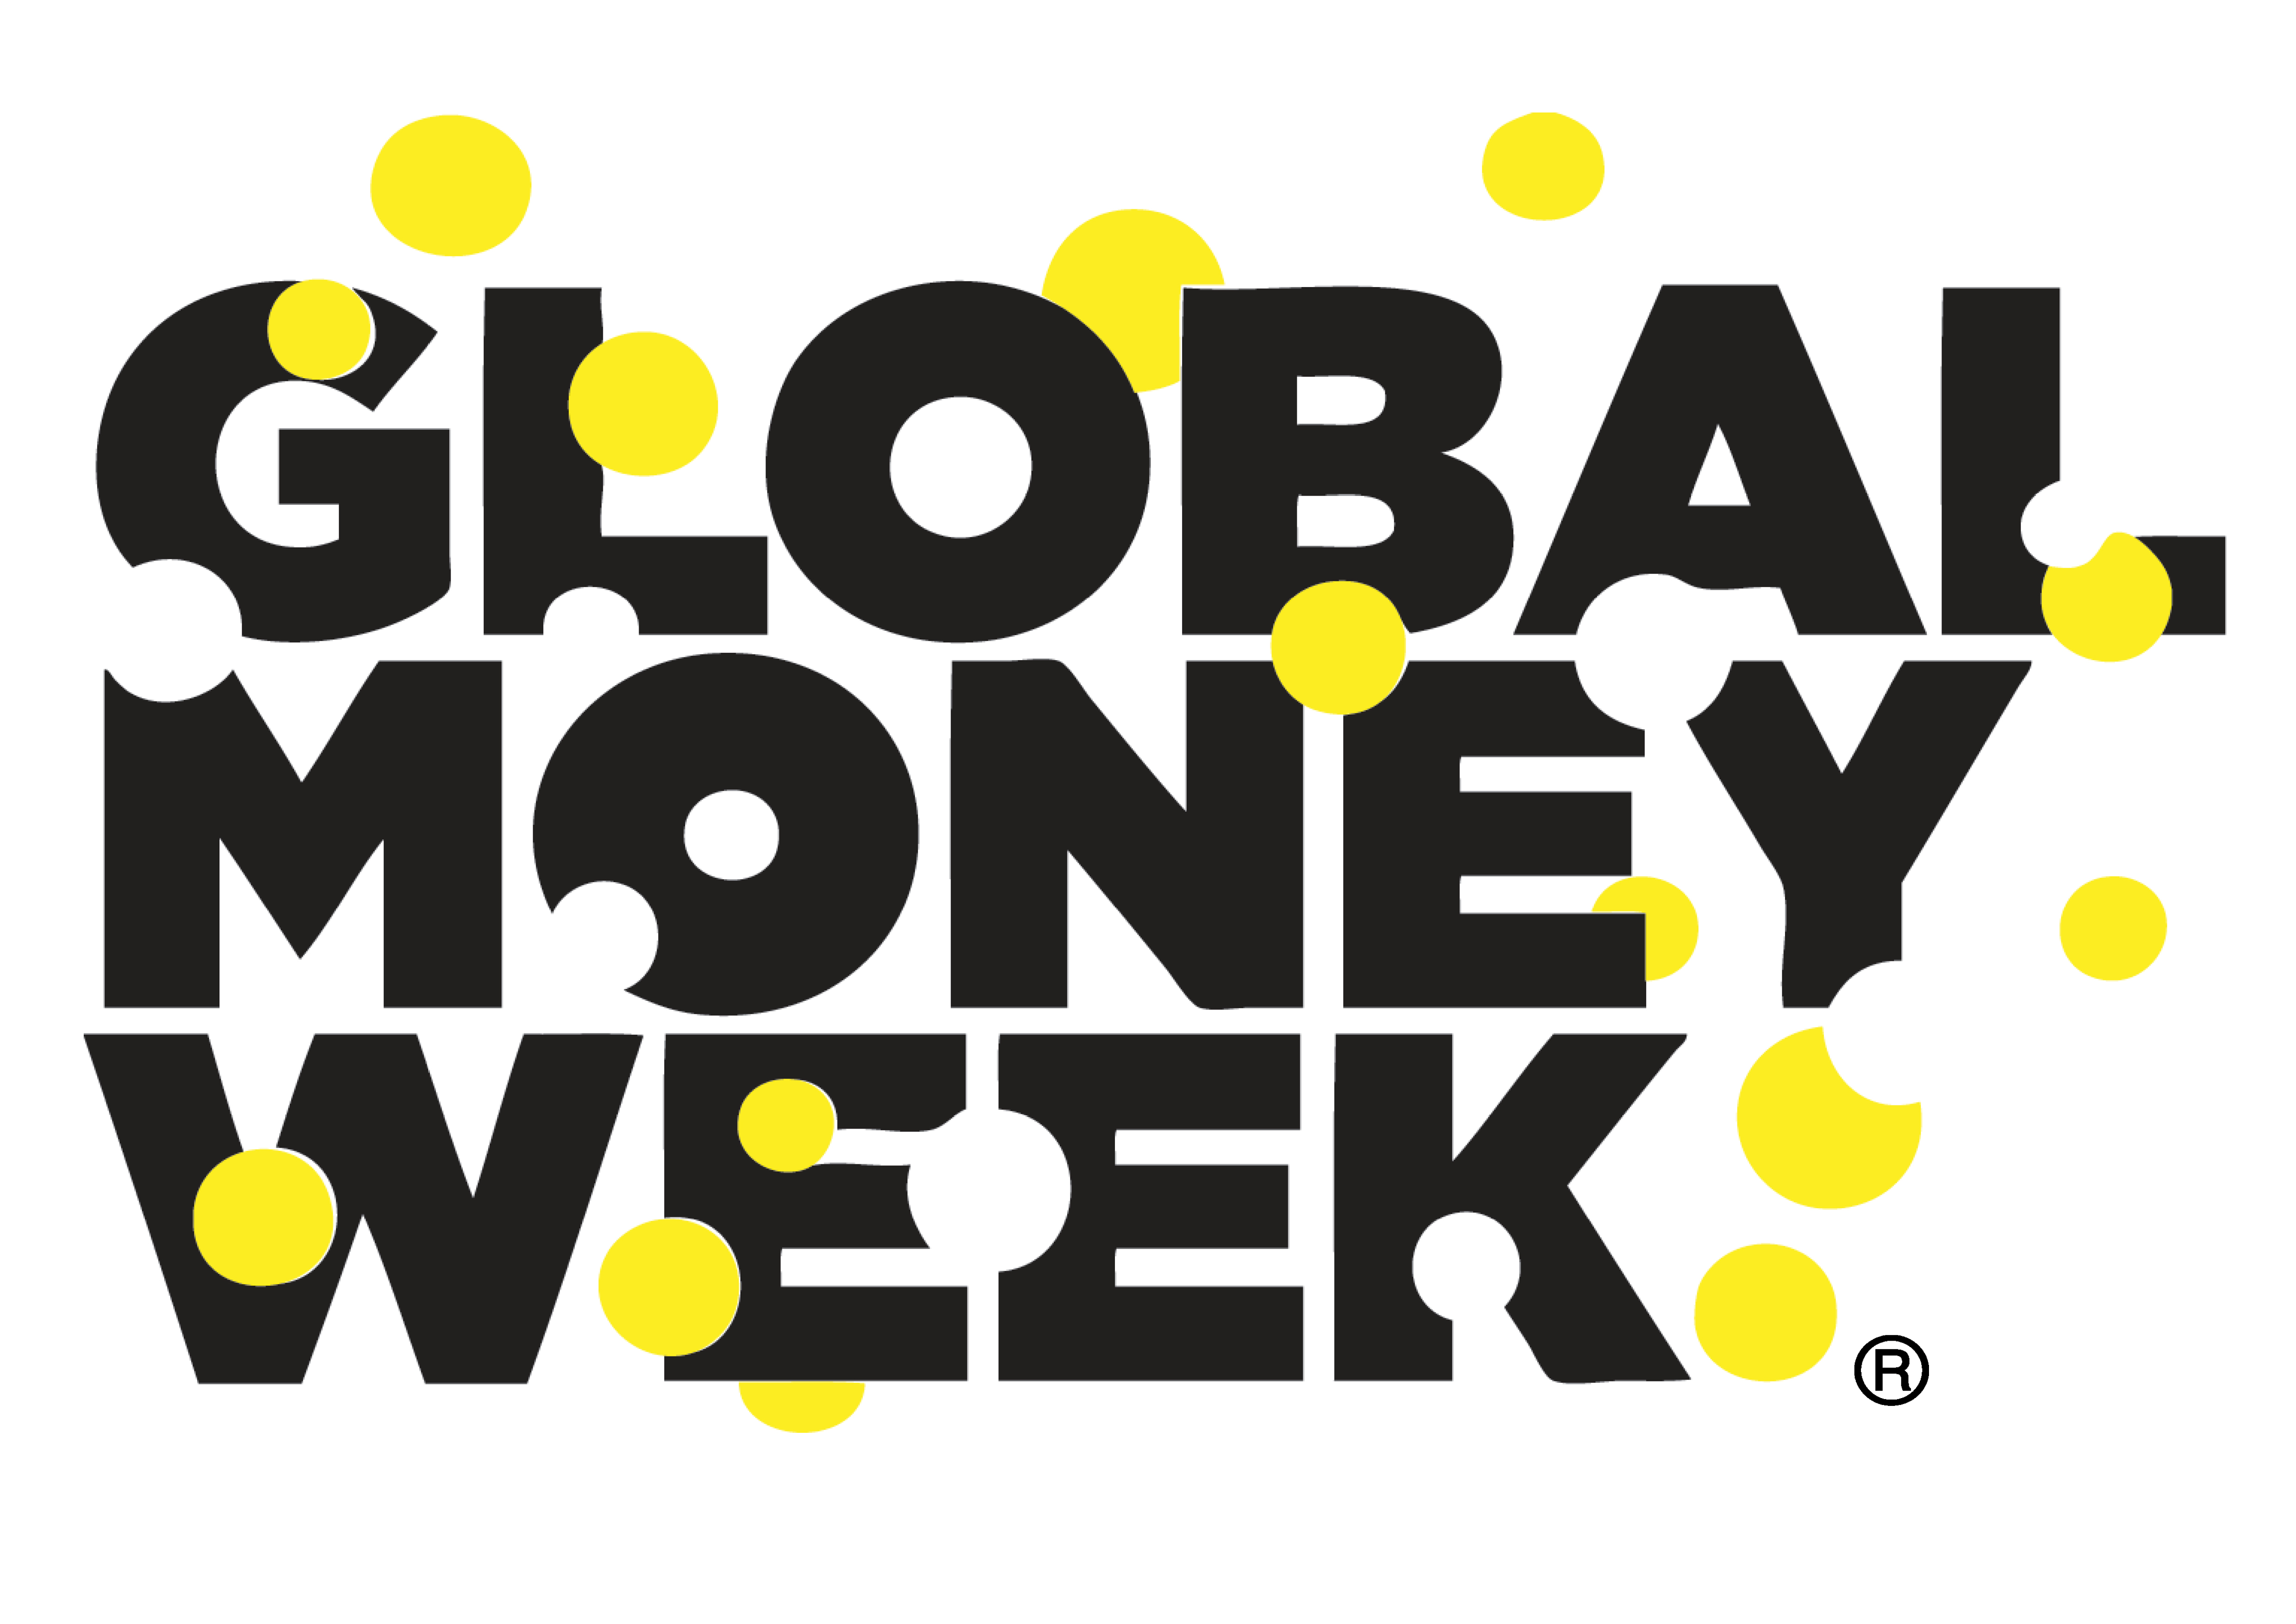 http://globalmoneyweek.org/resources/gmw2017/logos/black.jpg